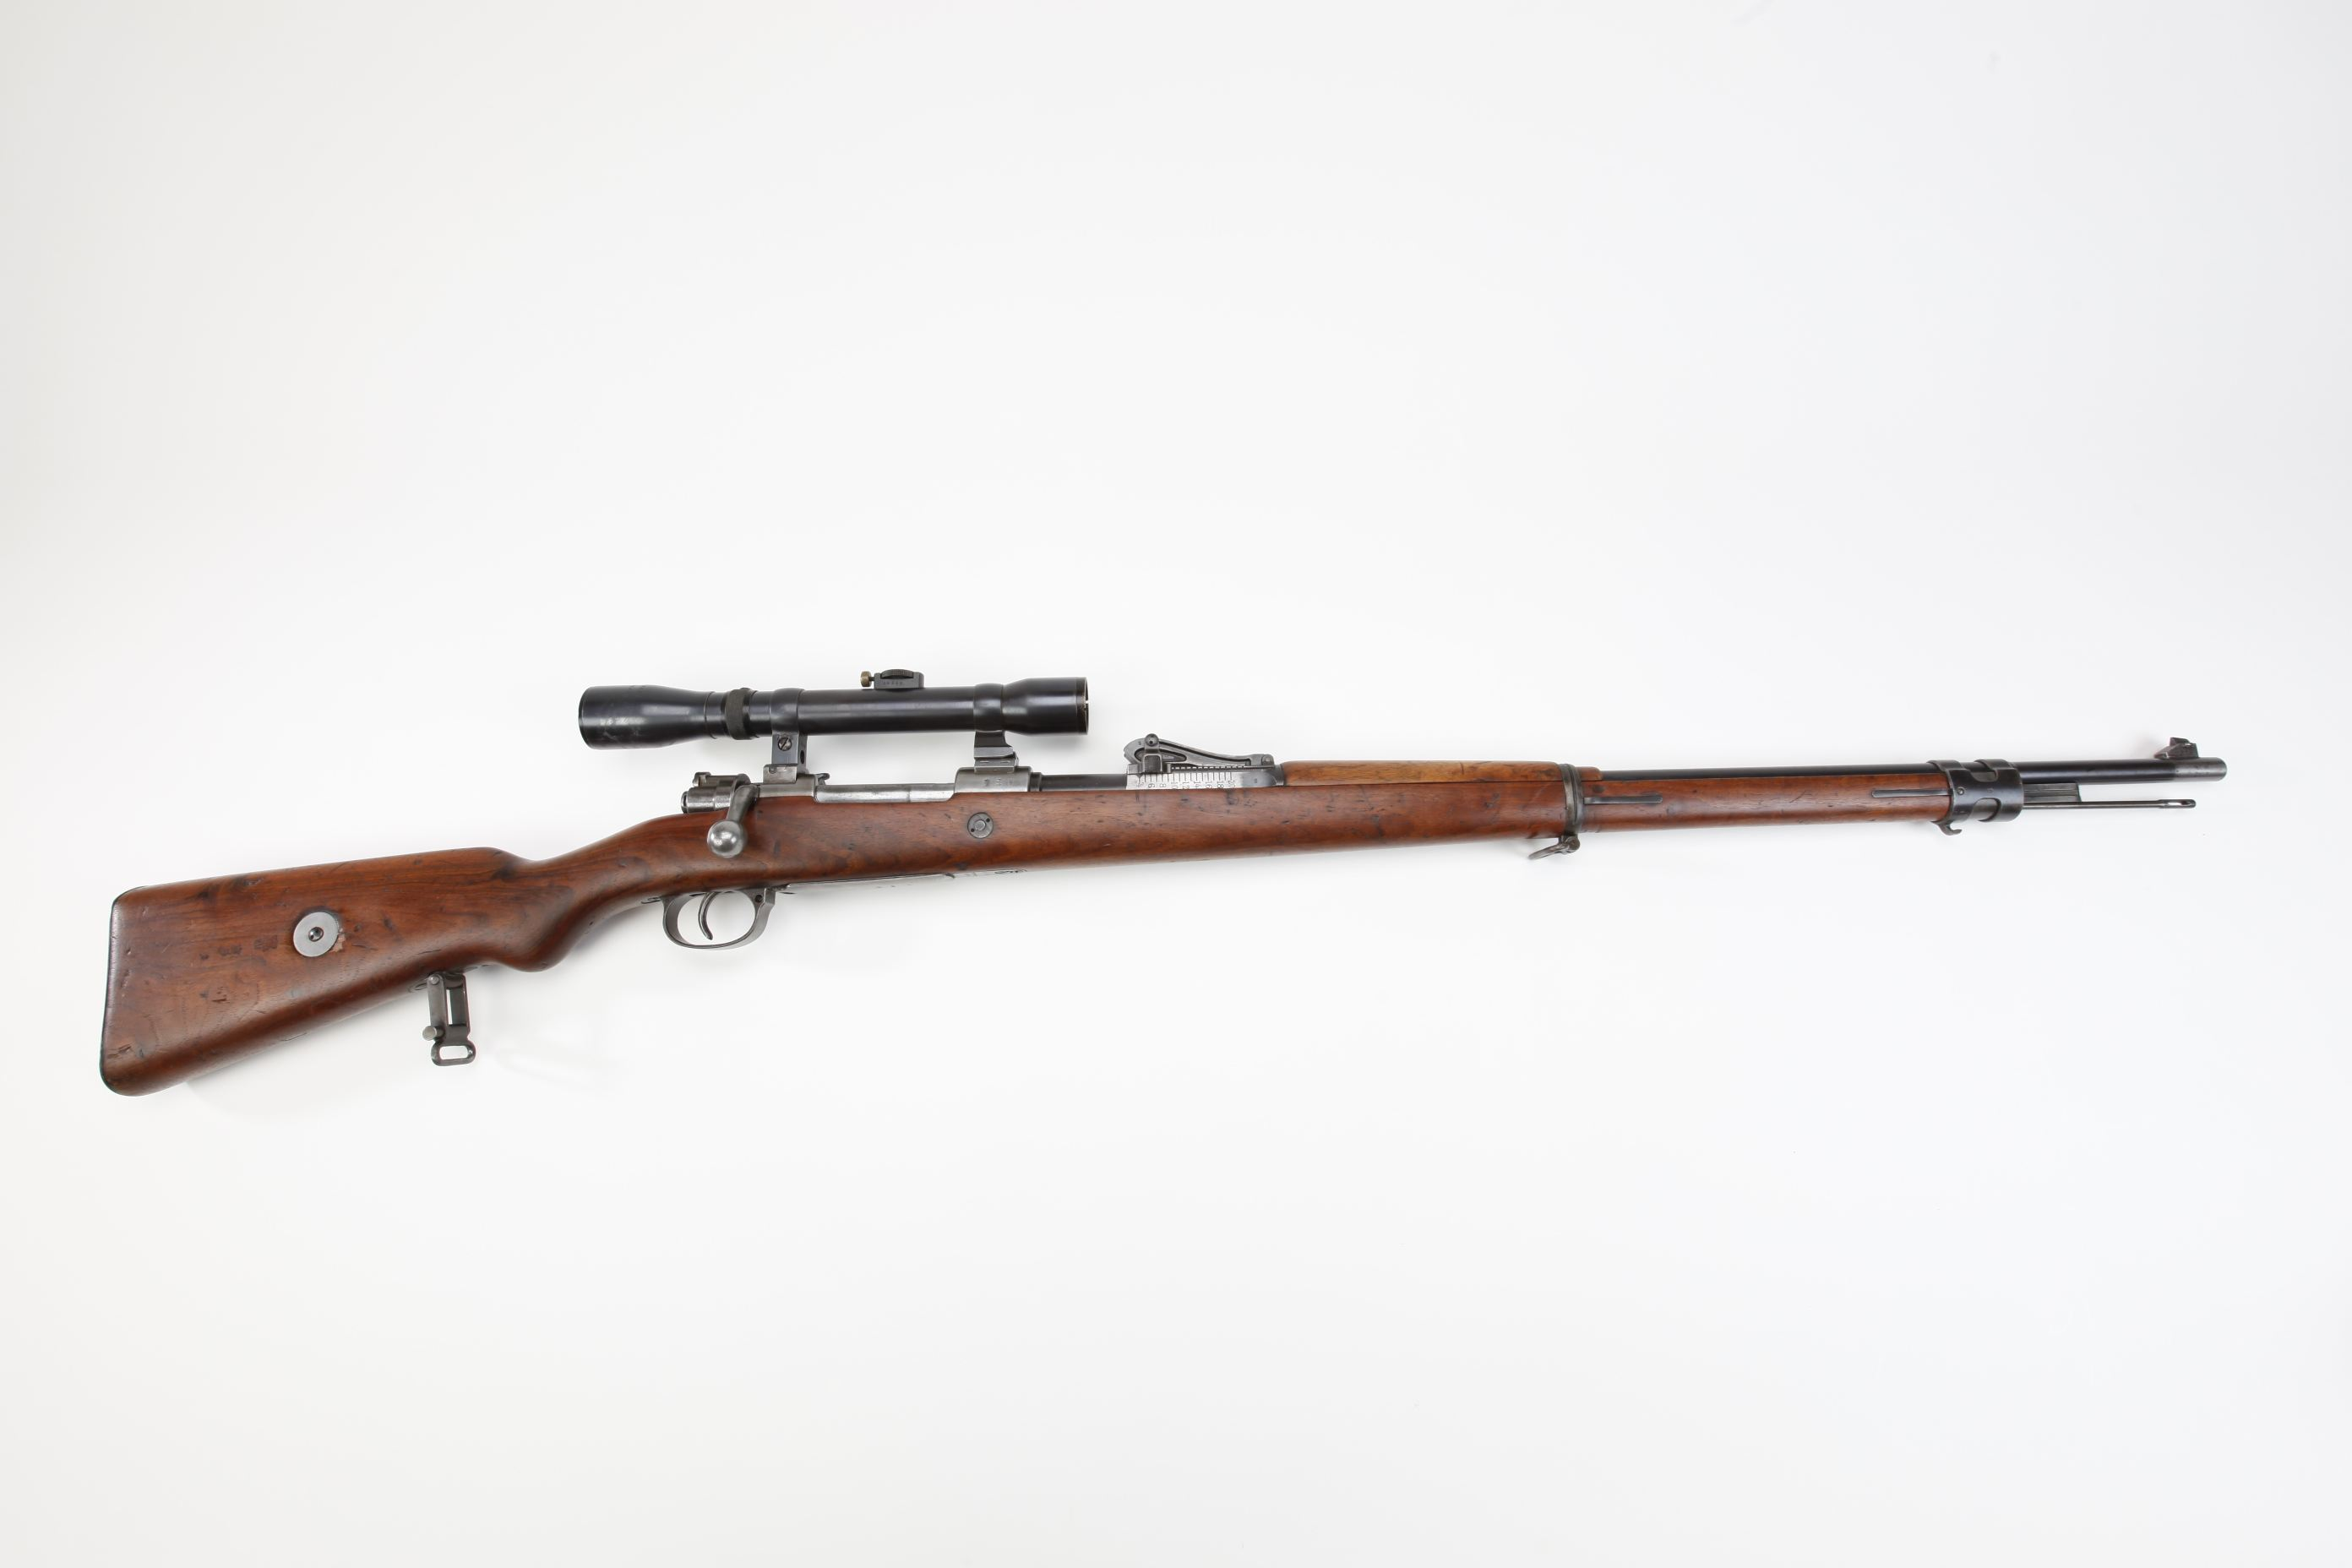 Mauser Gew 98 Bolt Action Sniper Rifle